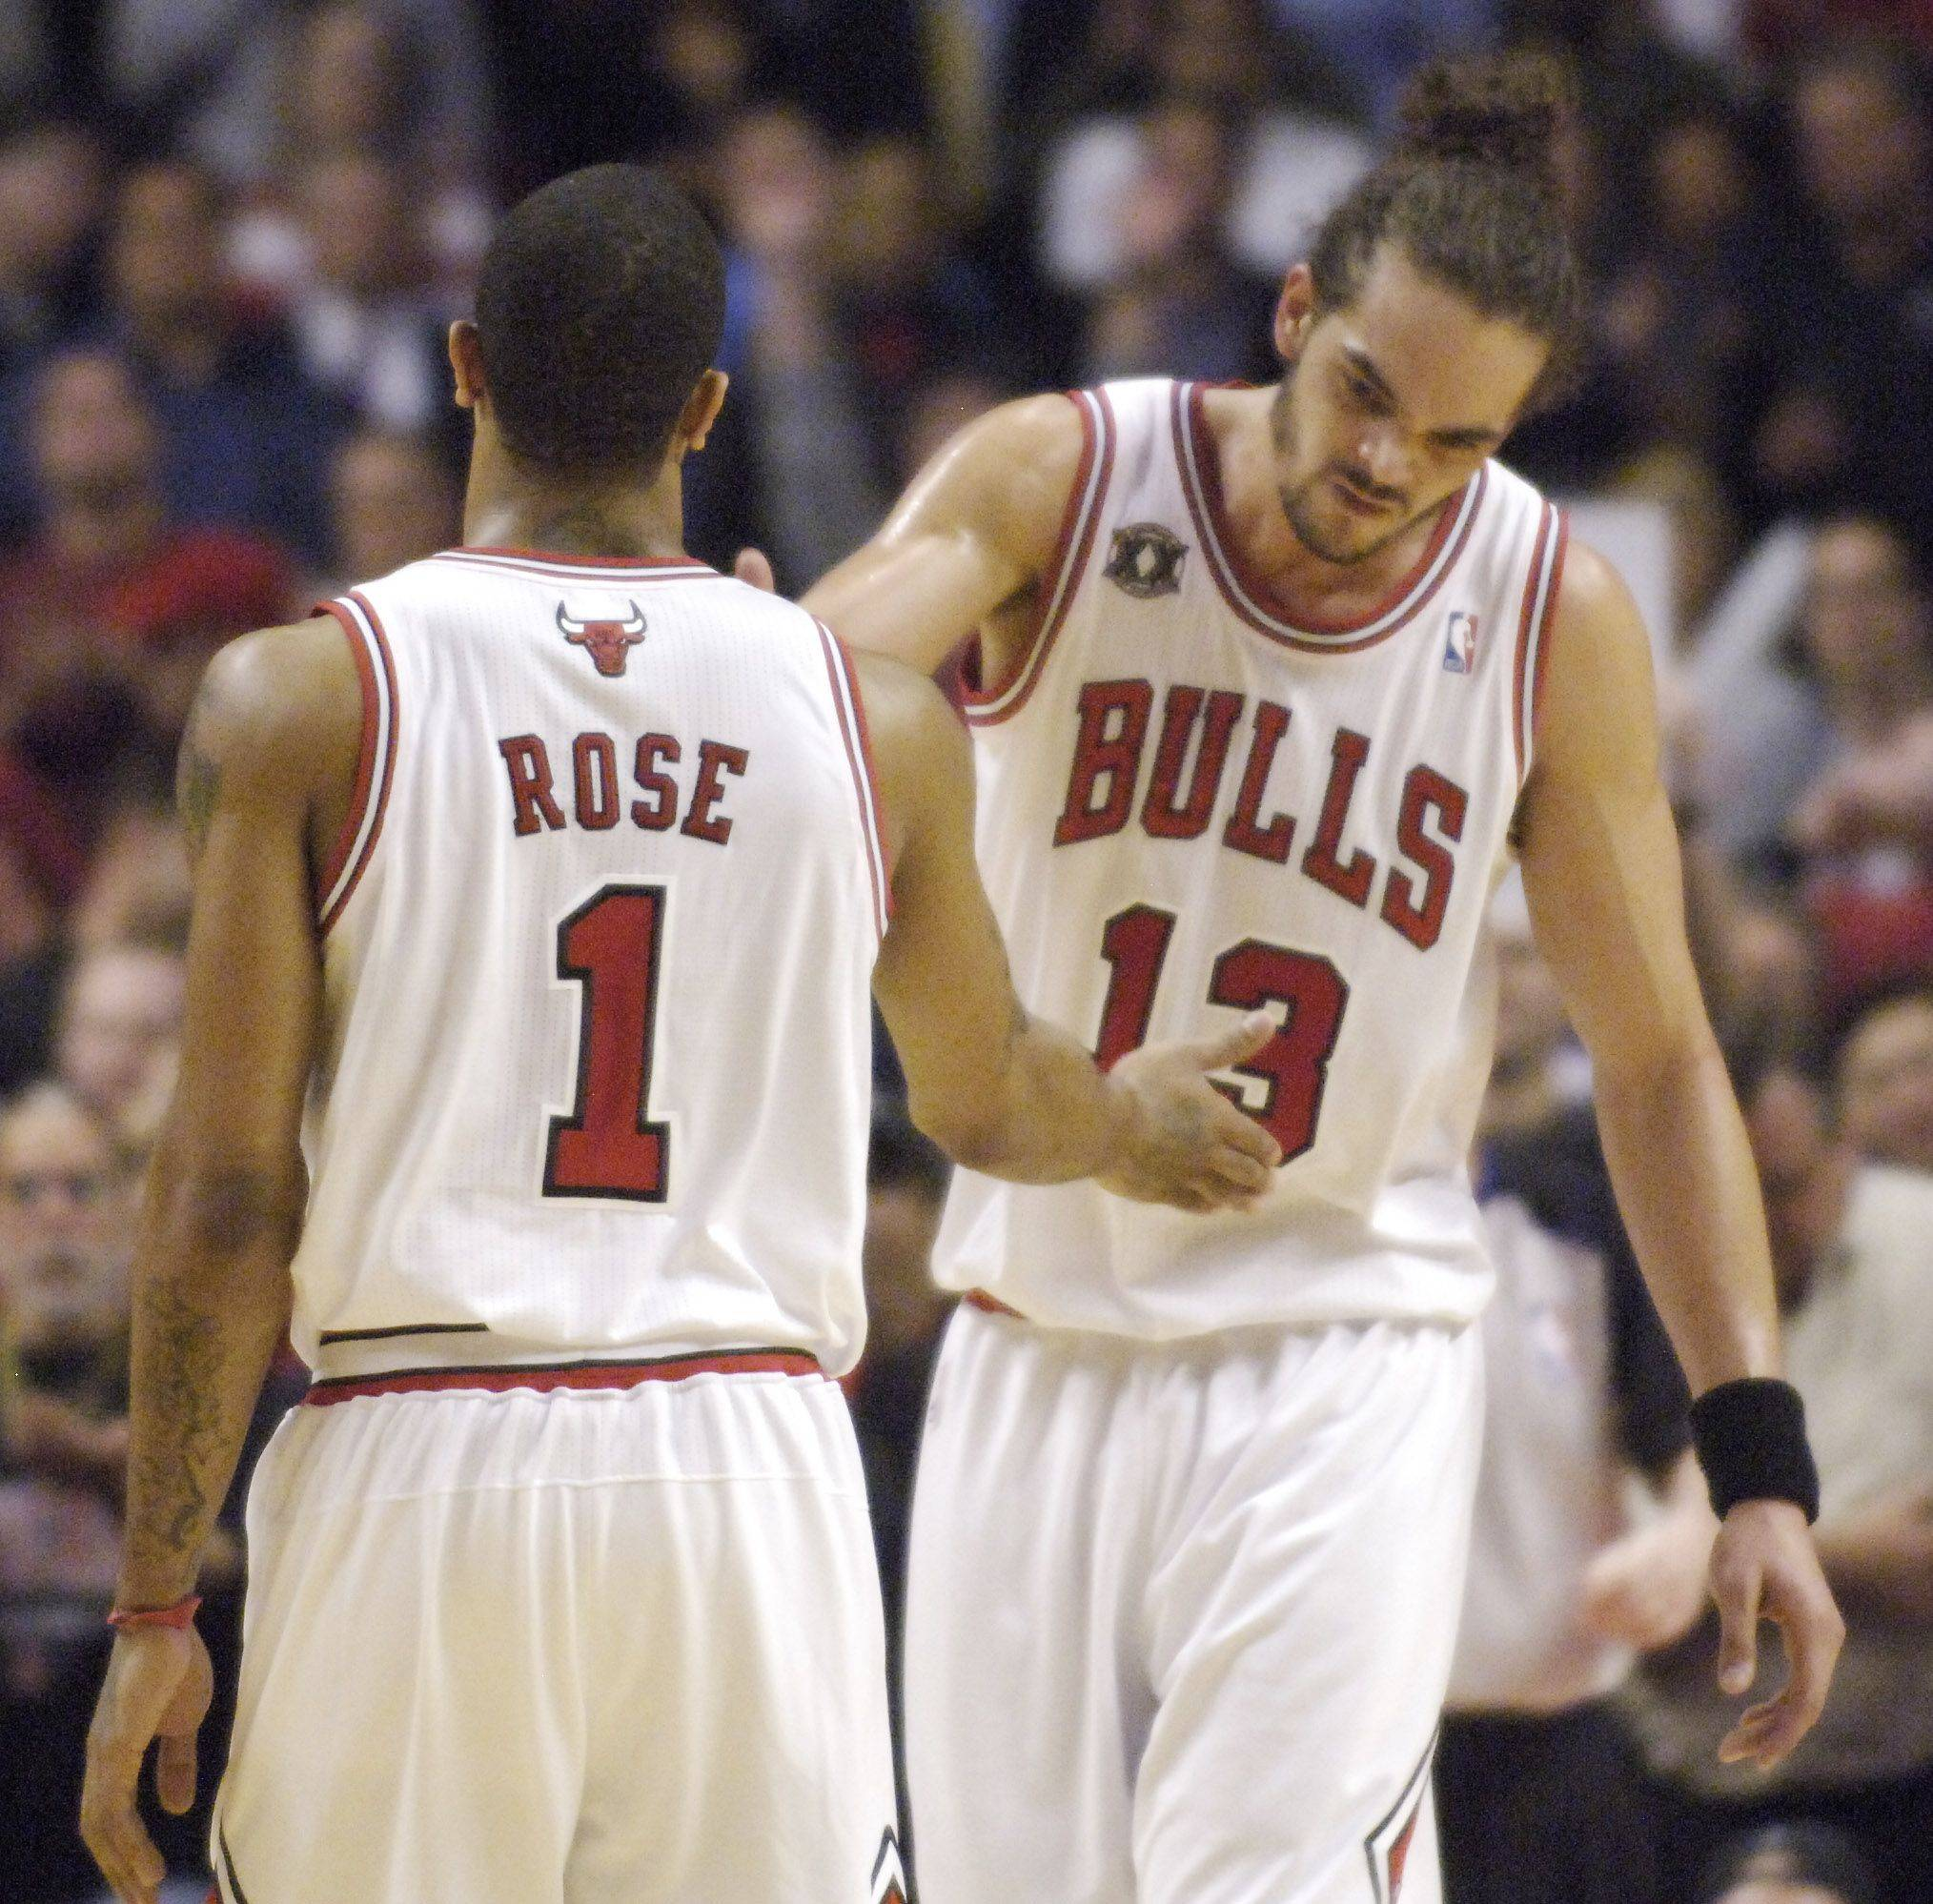 Bulls teammates Derrick Rose and Joakim Noah congratulate one another at the end of Wednesday's victory over the Hawks.